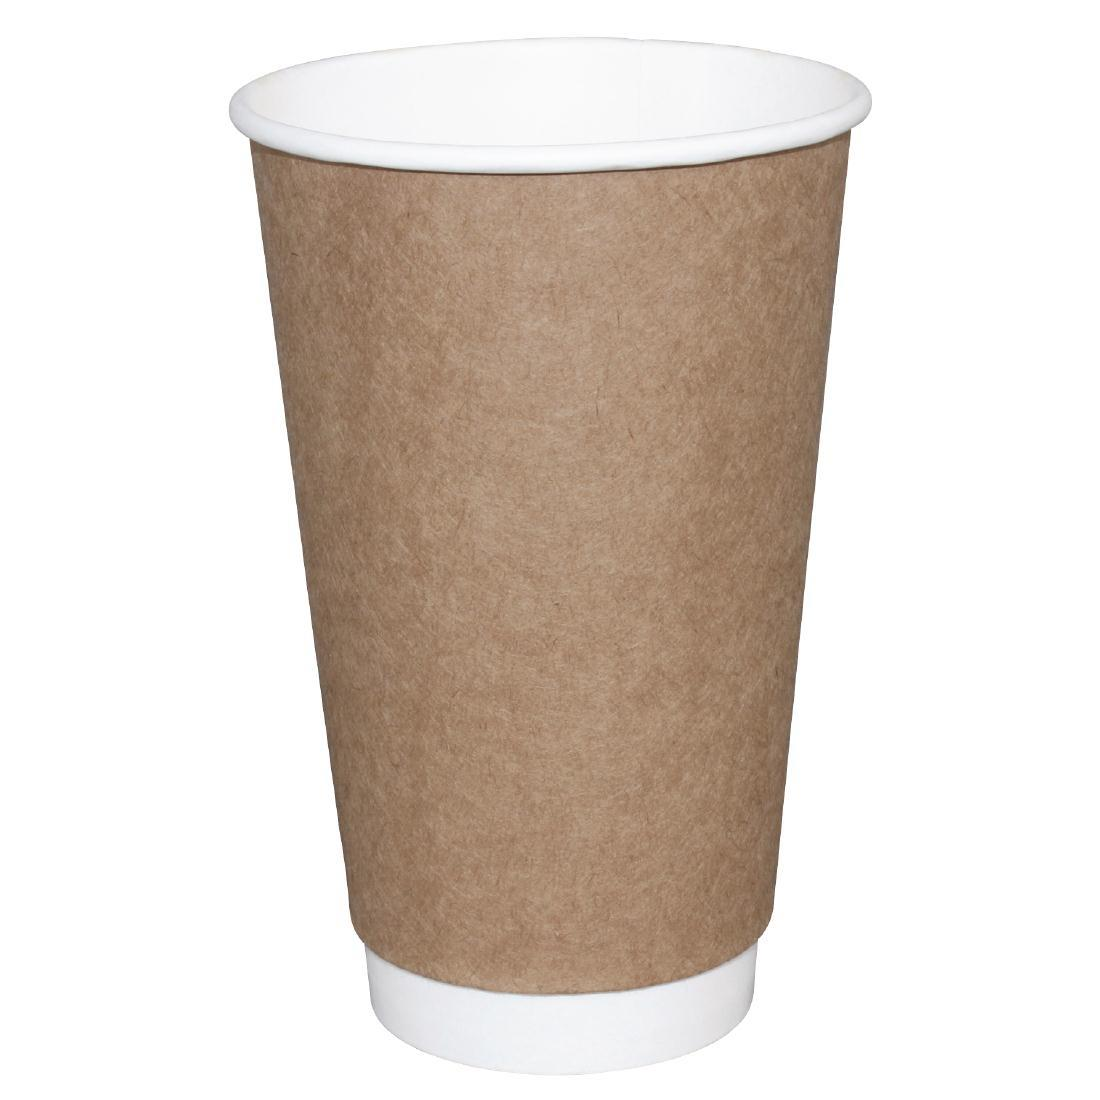 GP438 - Kraft Double Wall 16oz Recyclable Hot Cups Fiesta - Case: 25 - GP438